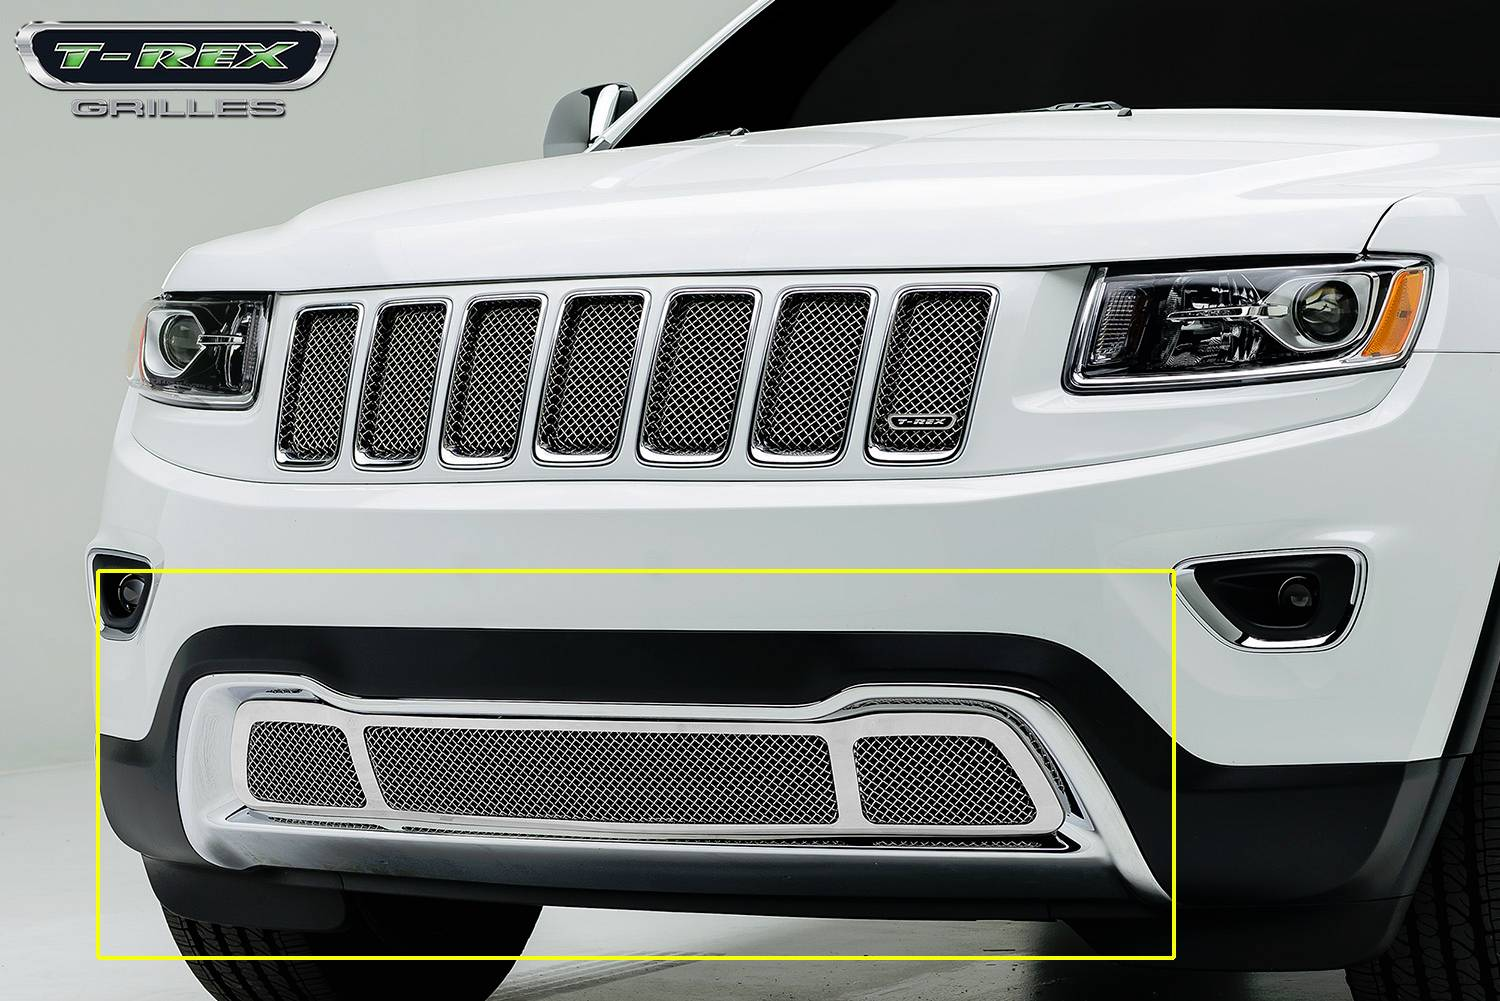 T rex jeep grand cherokee upper class stainless steel chrome bumper mesh grille pt 57488